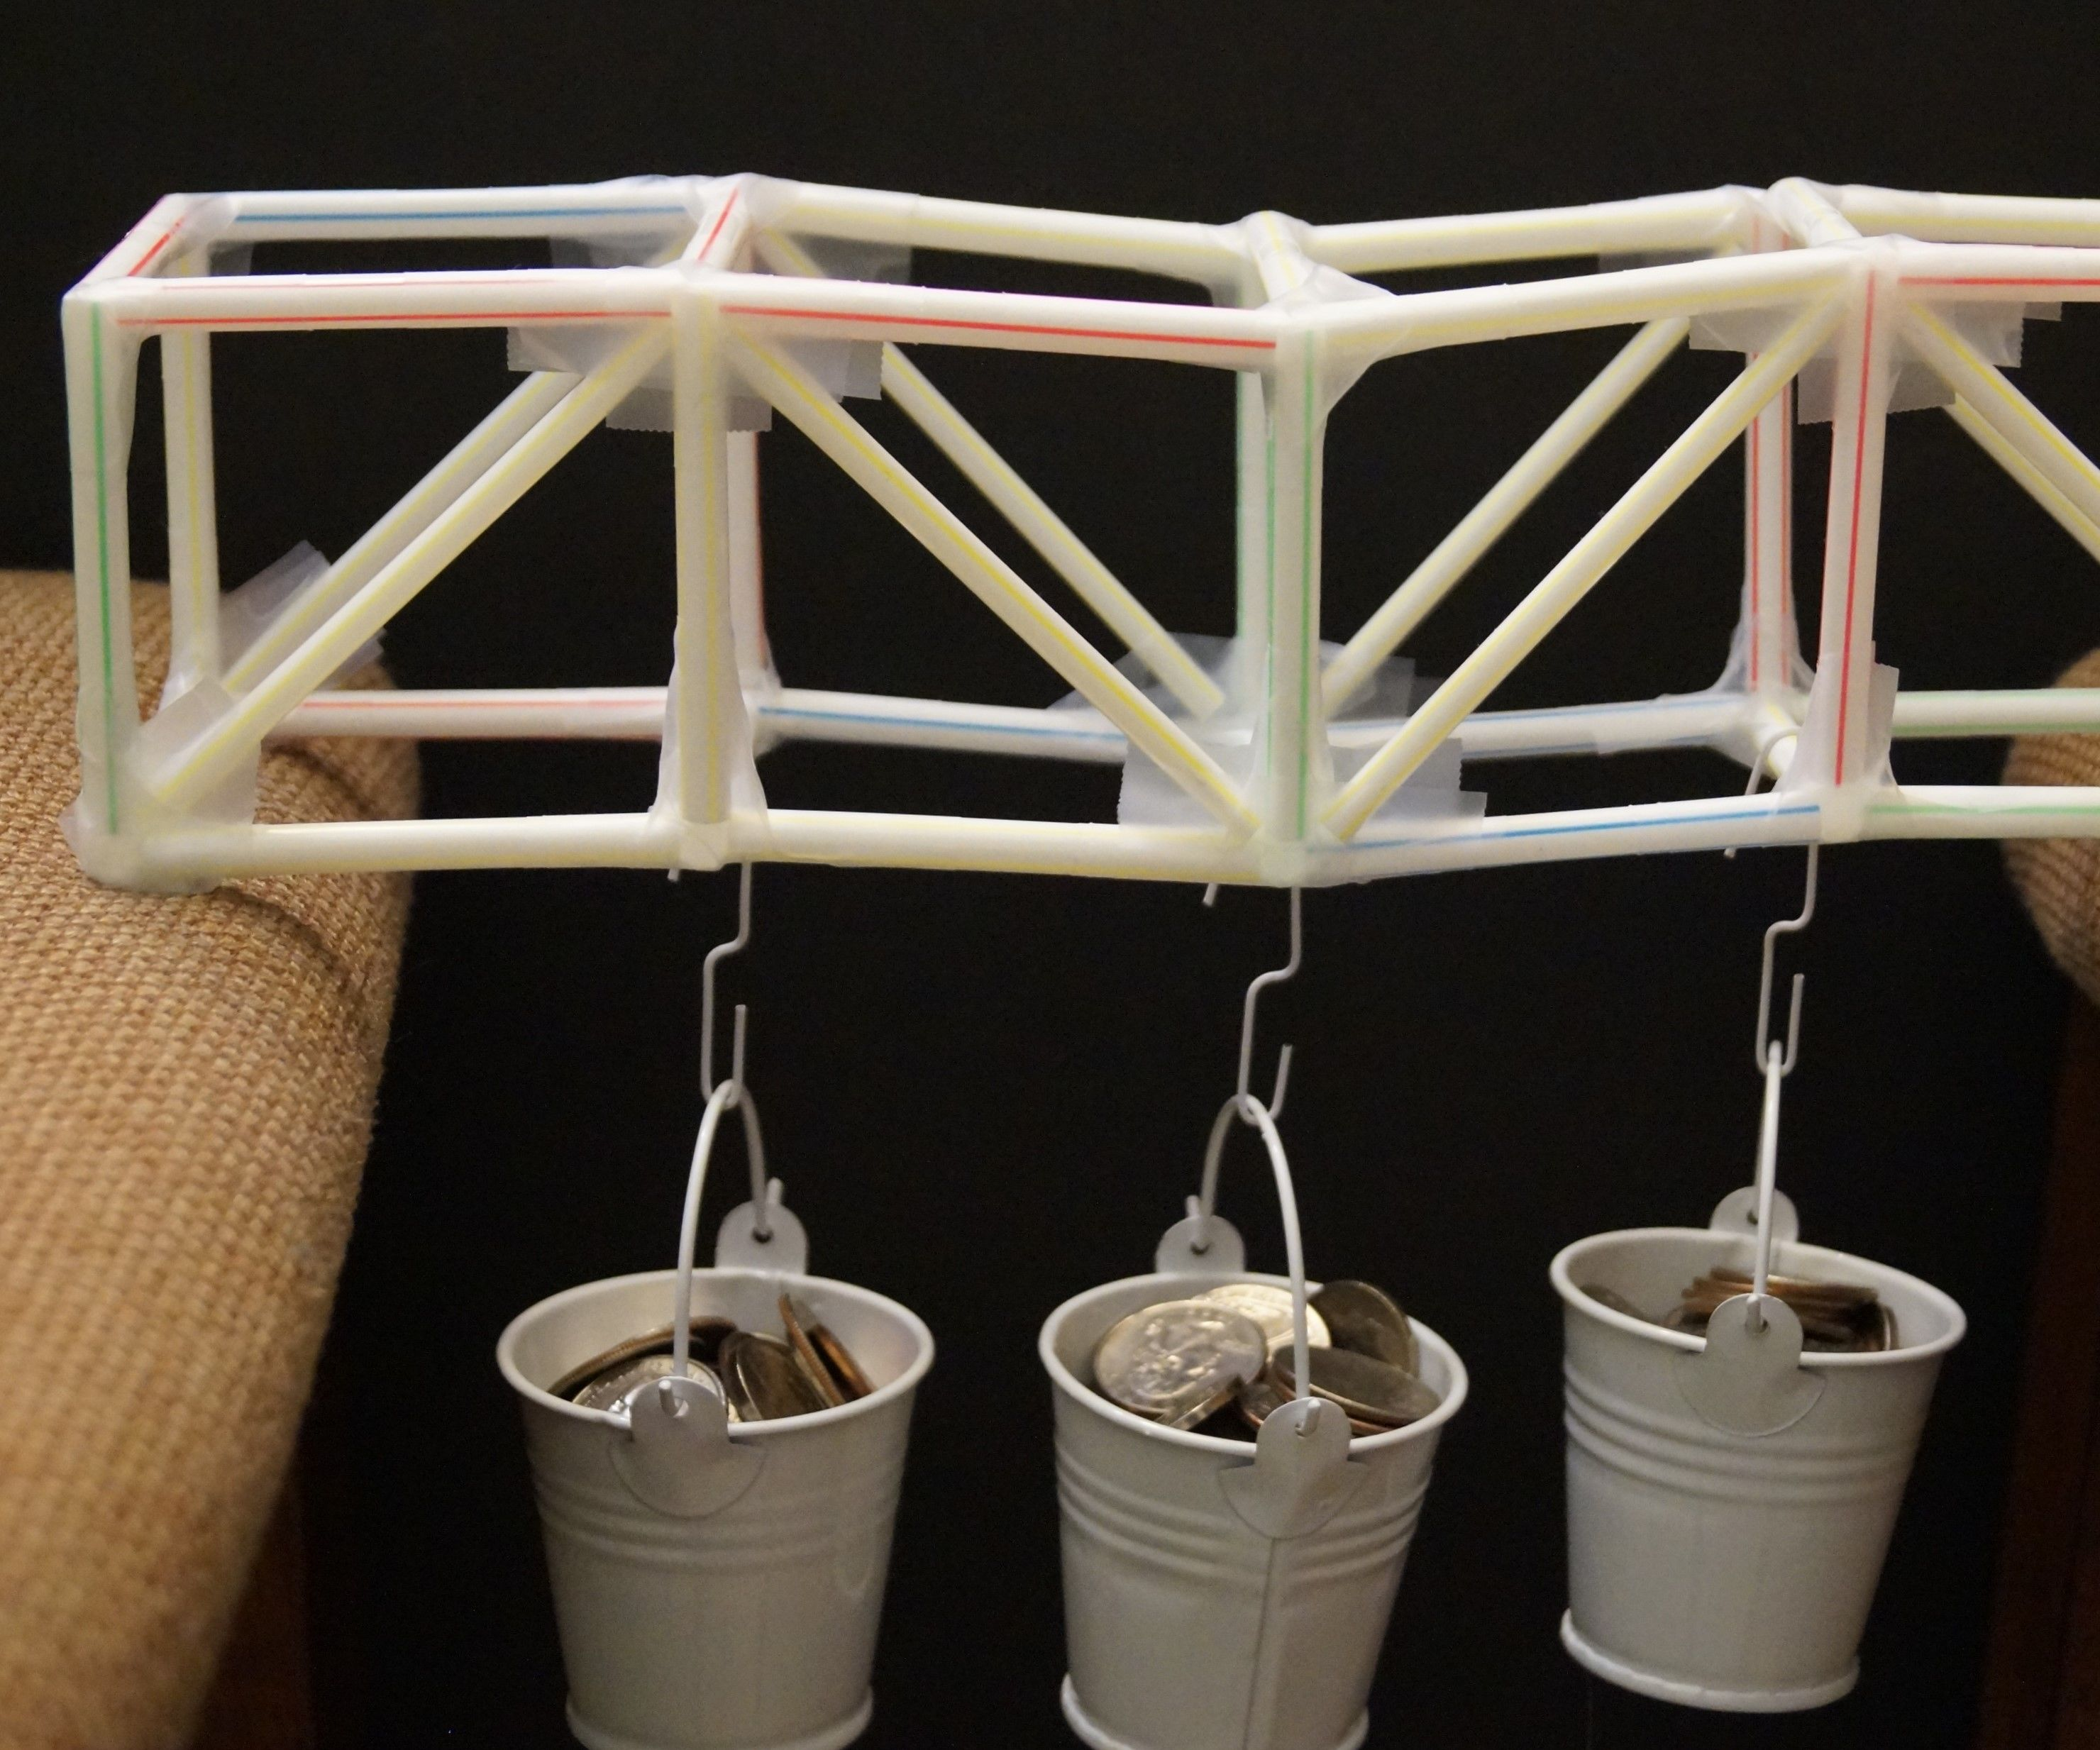 Truss Bridge 2 – Straws & tape (A challenge project)